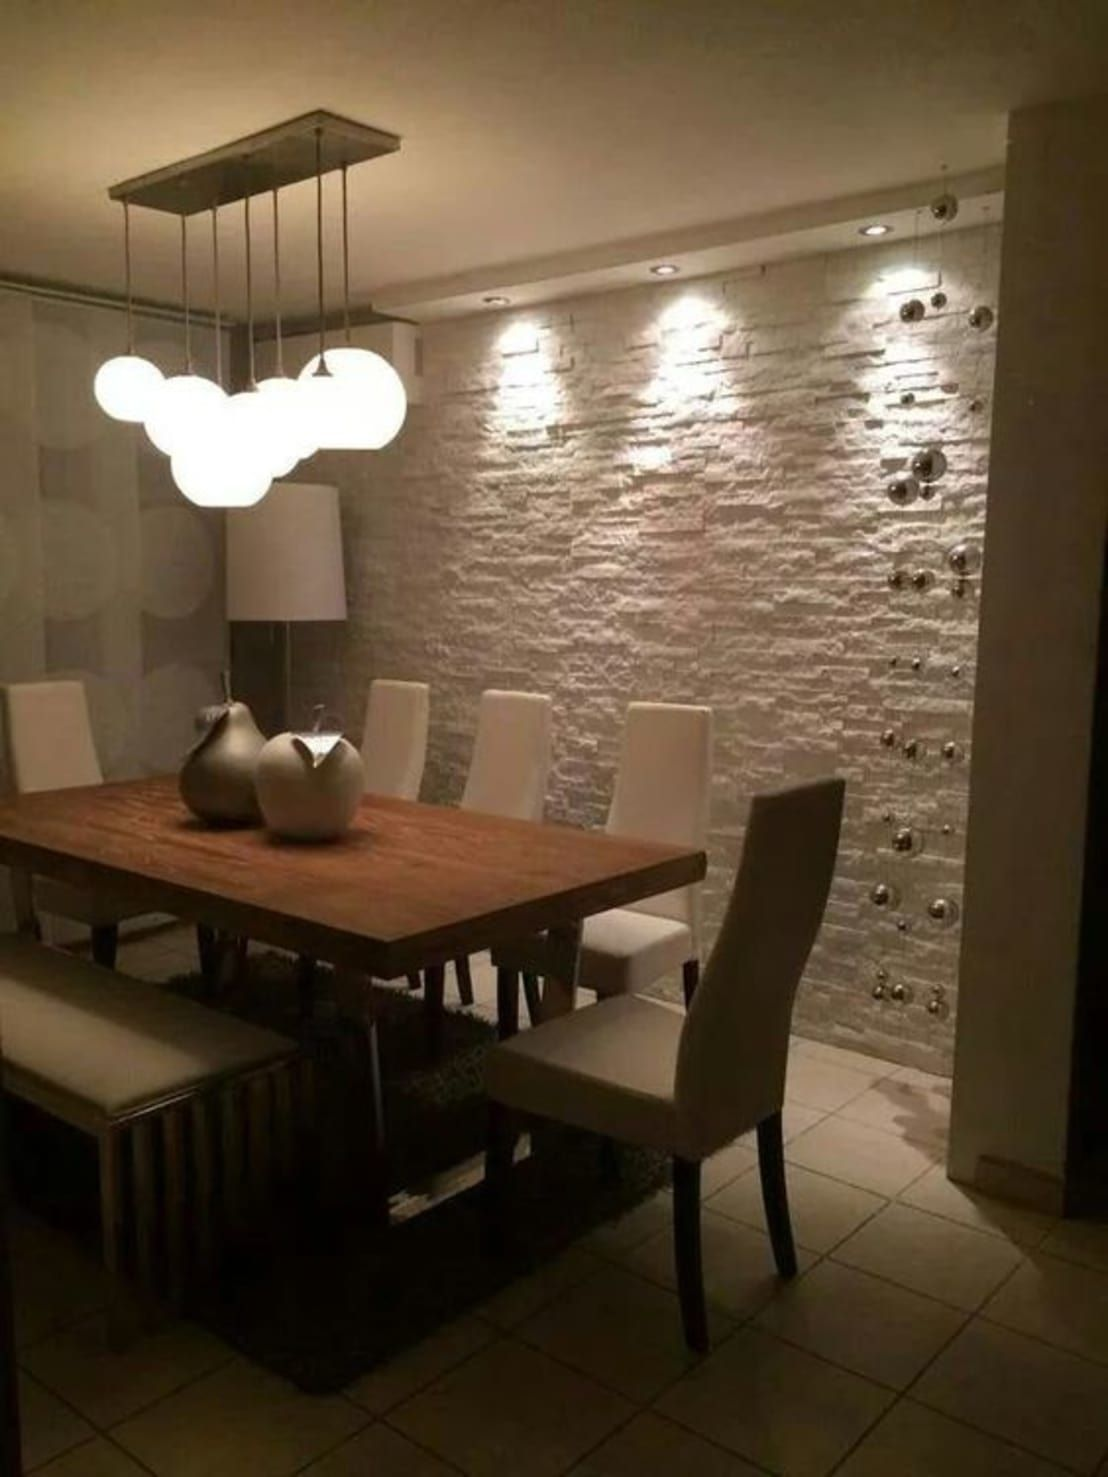 13 ideas para decorar tu casa con piedra y que luzca muy for Decoracion casa piedra